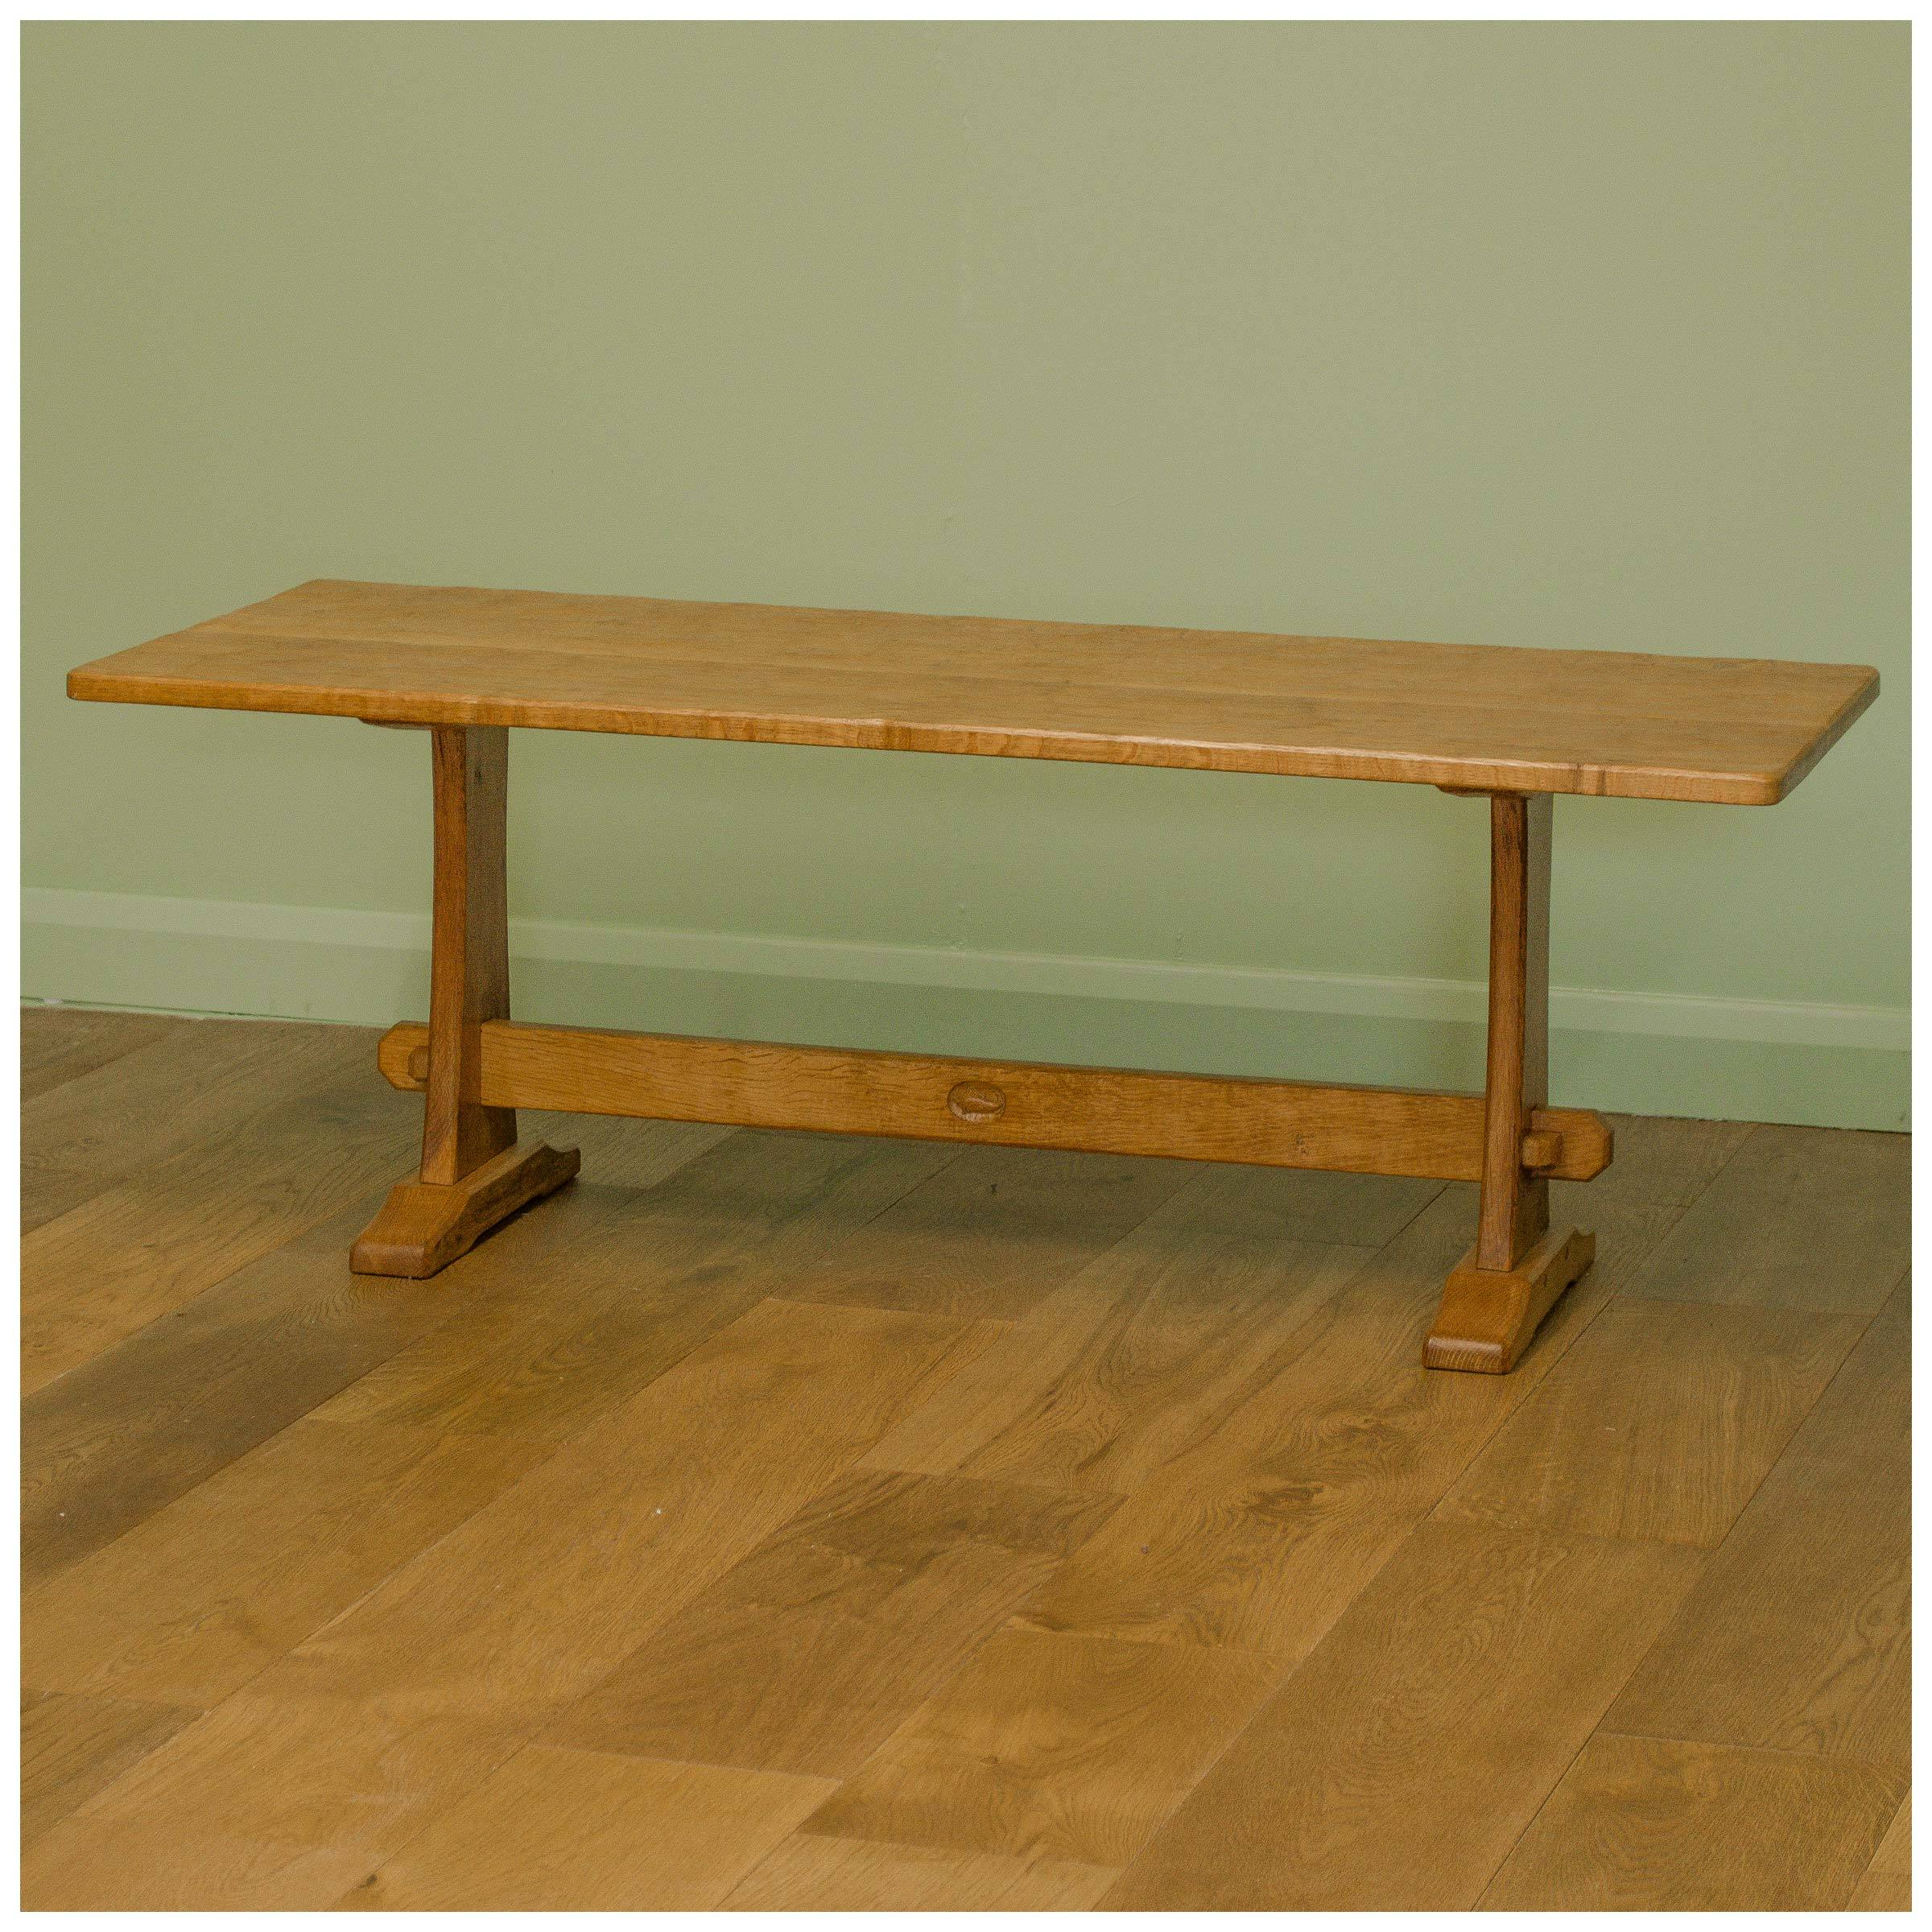 4-foot-yorkshire-school-adzed-oak-coffee-table-by-derek-fishman-later-lizardman-slater-b0020152a.jpg